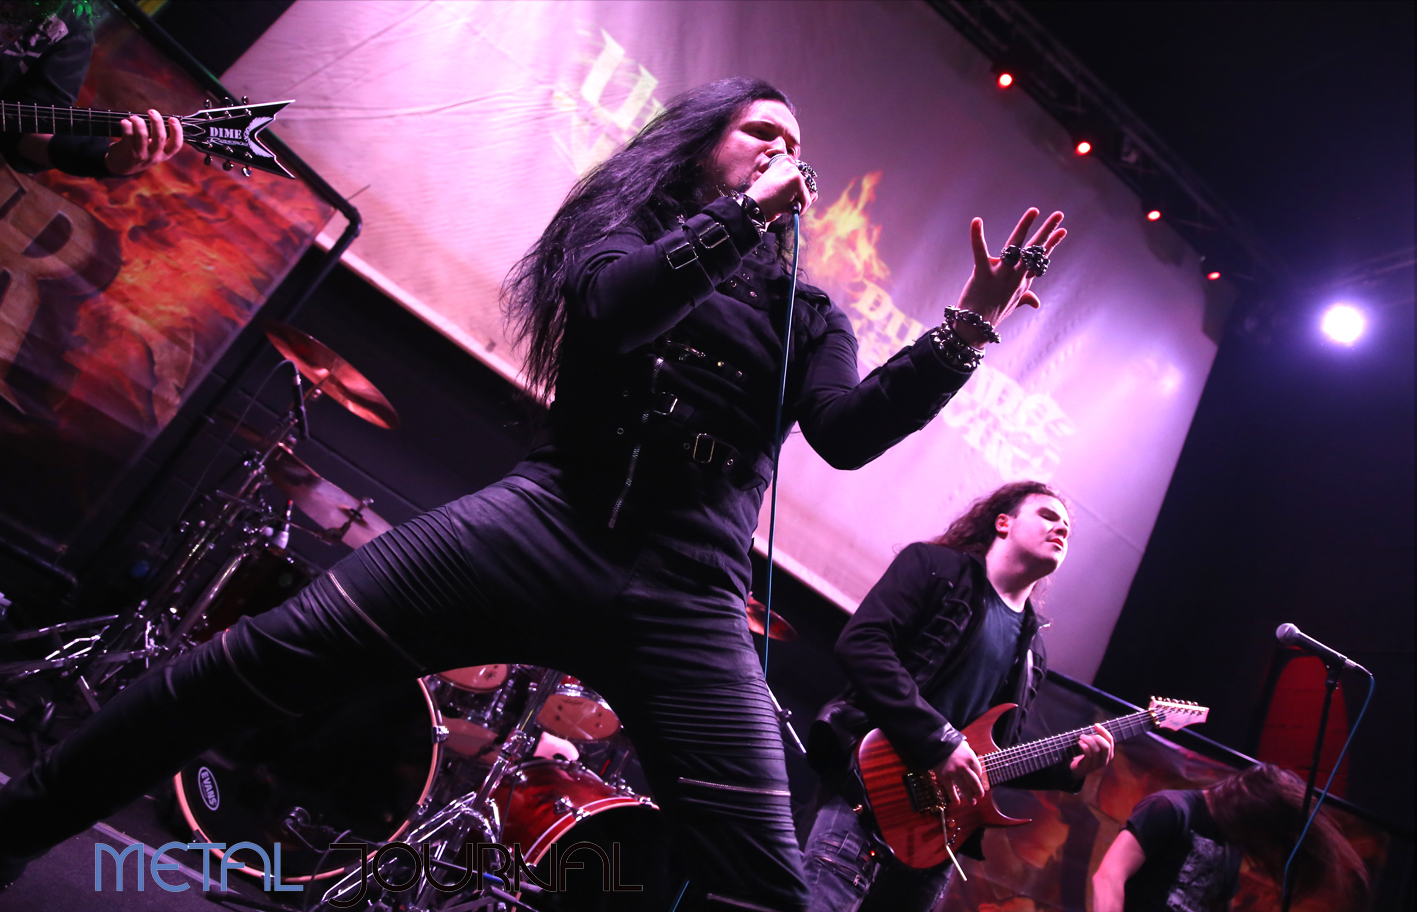 vicious rumors - metal journal irun pic 3